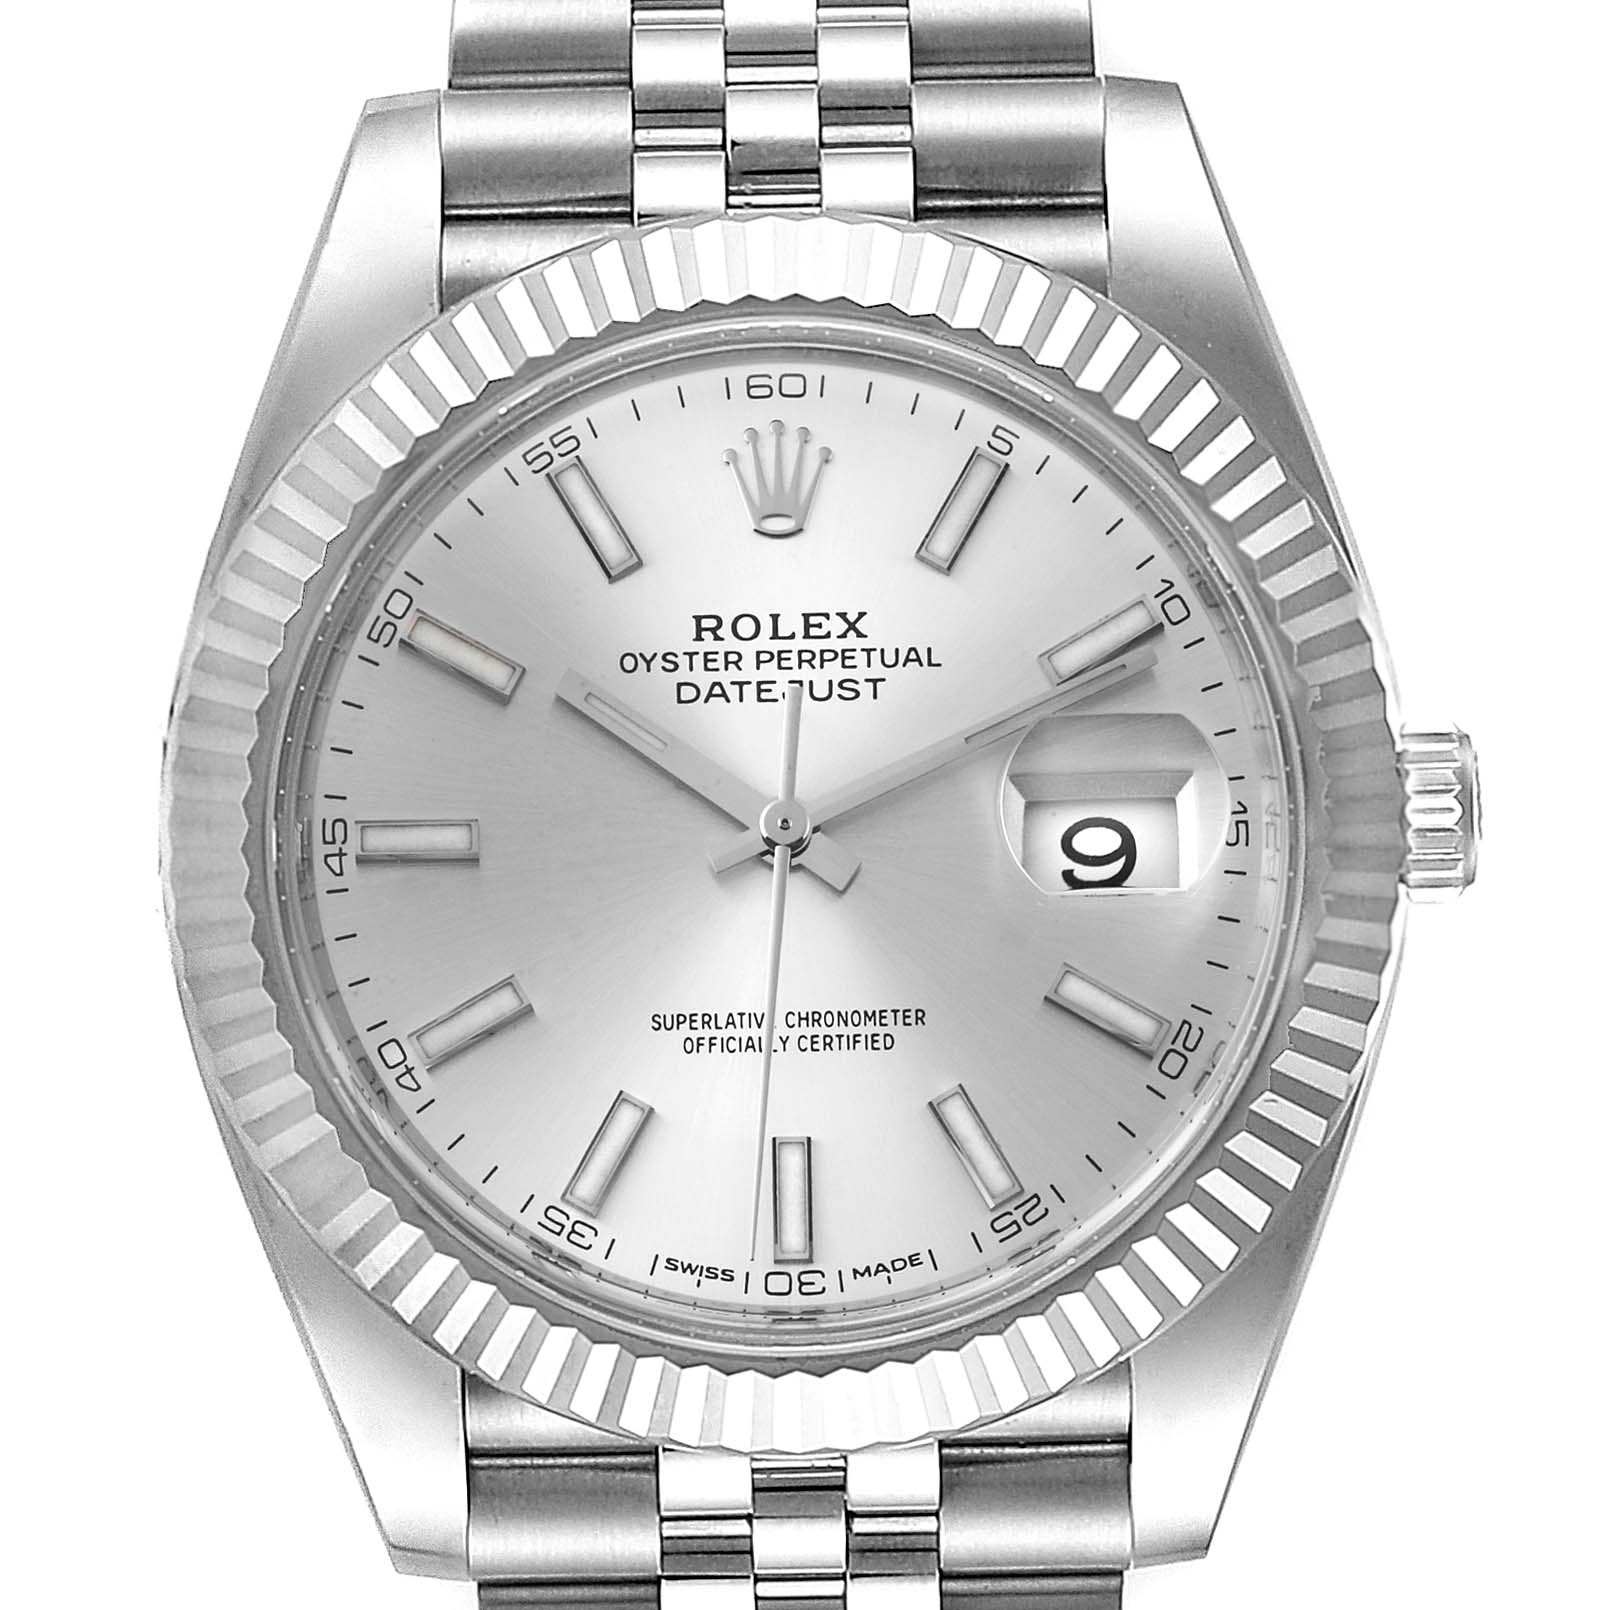 Rolex Datejust 41 Steel White Gold Silver Dial Watch 126334 Box Card